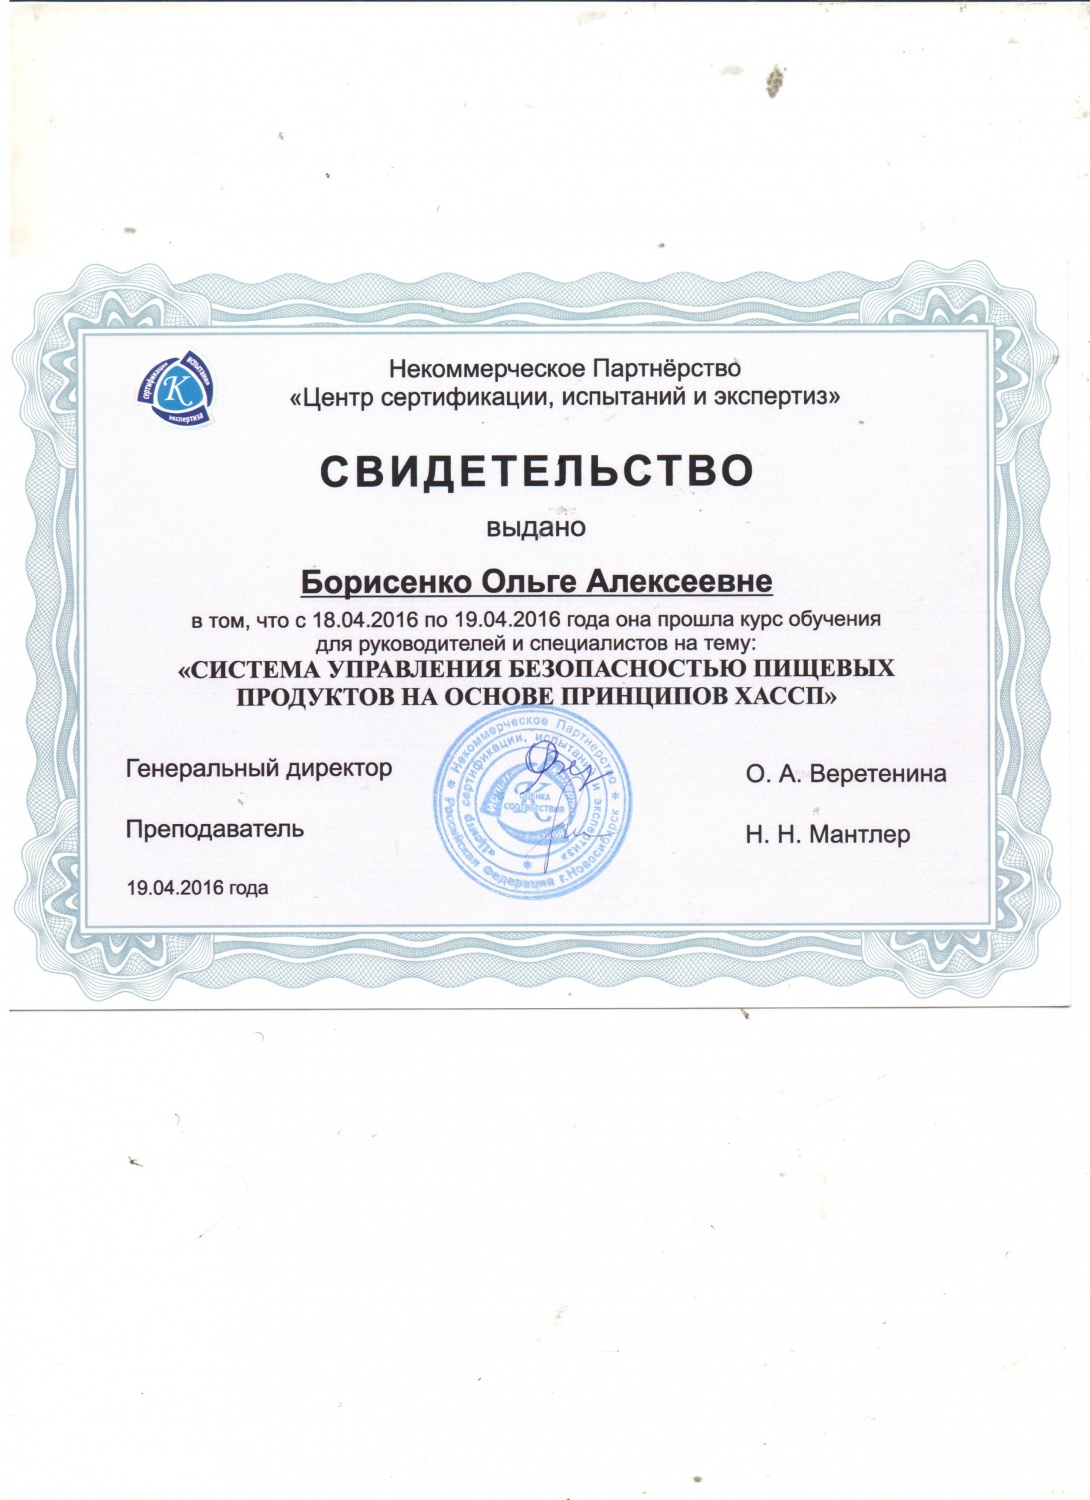 Certificate 'Safety Management System for Provision According to the HACCP Principles'